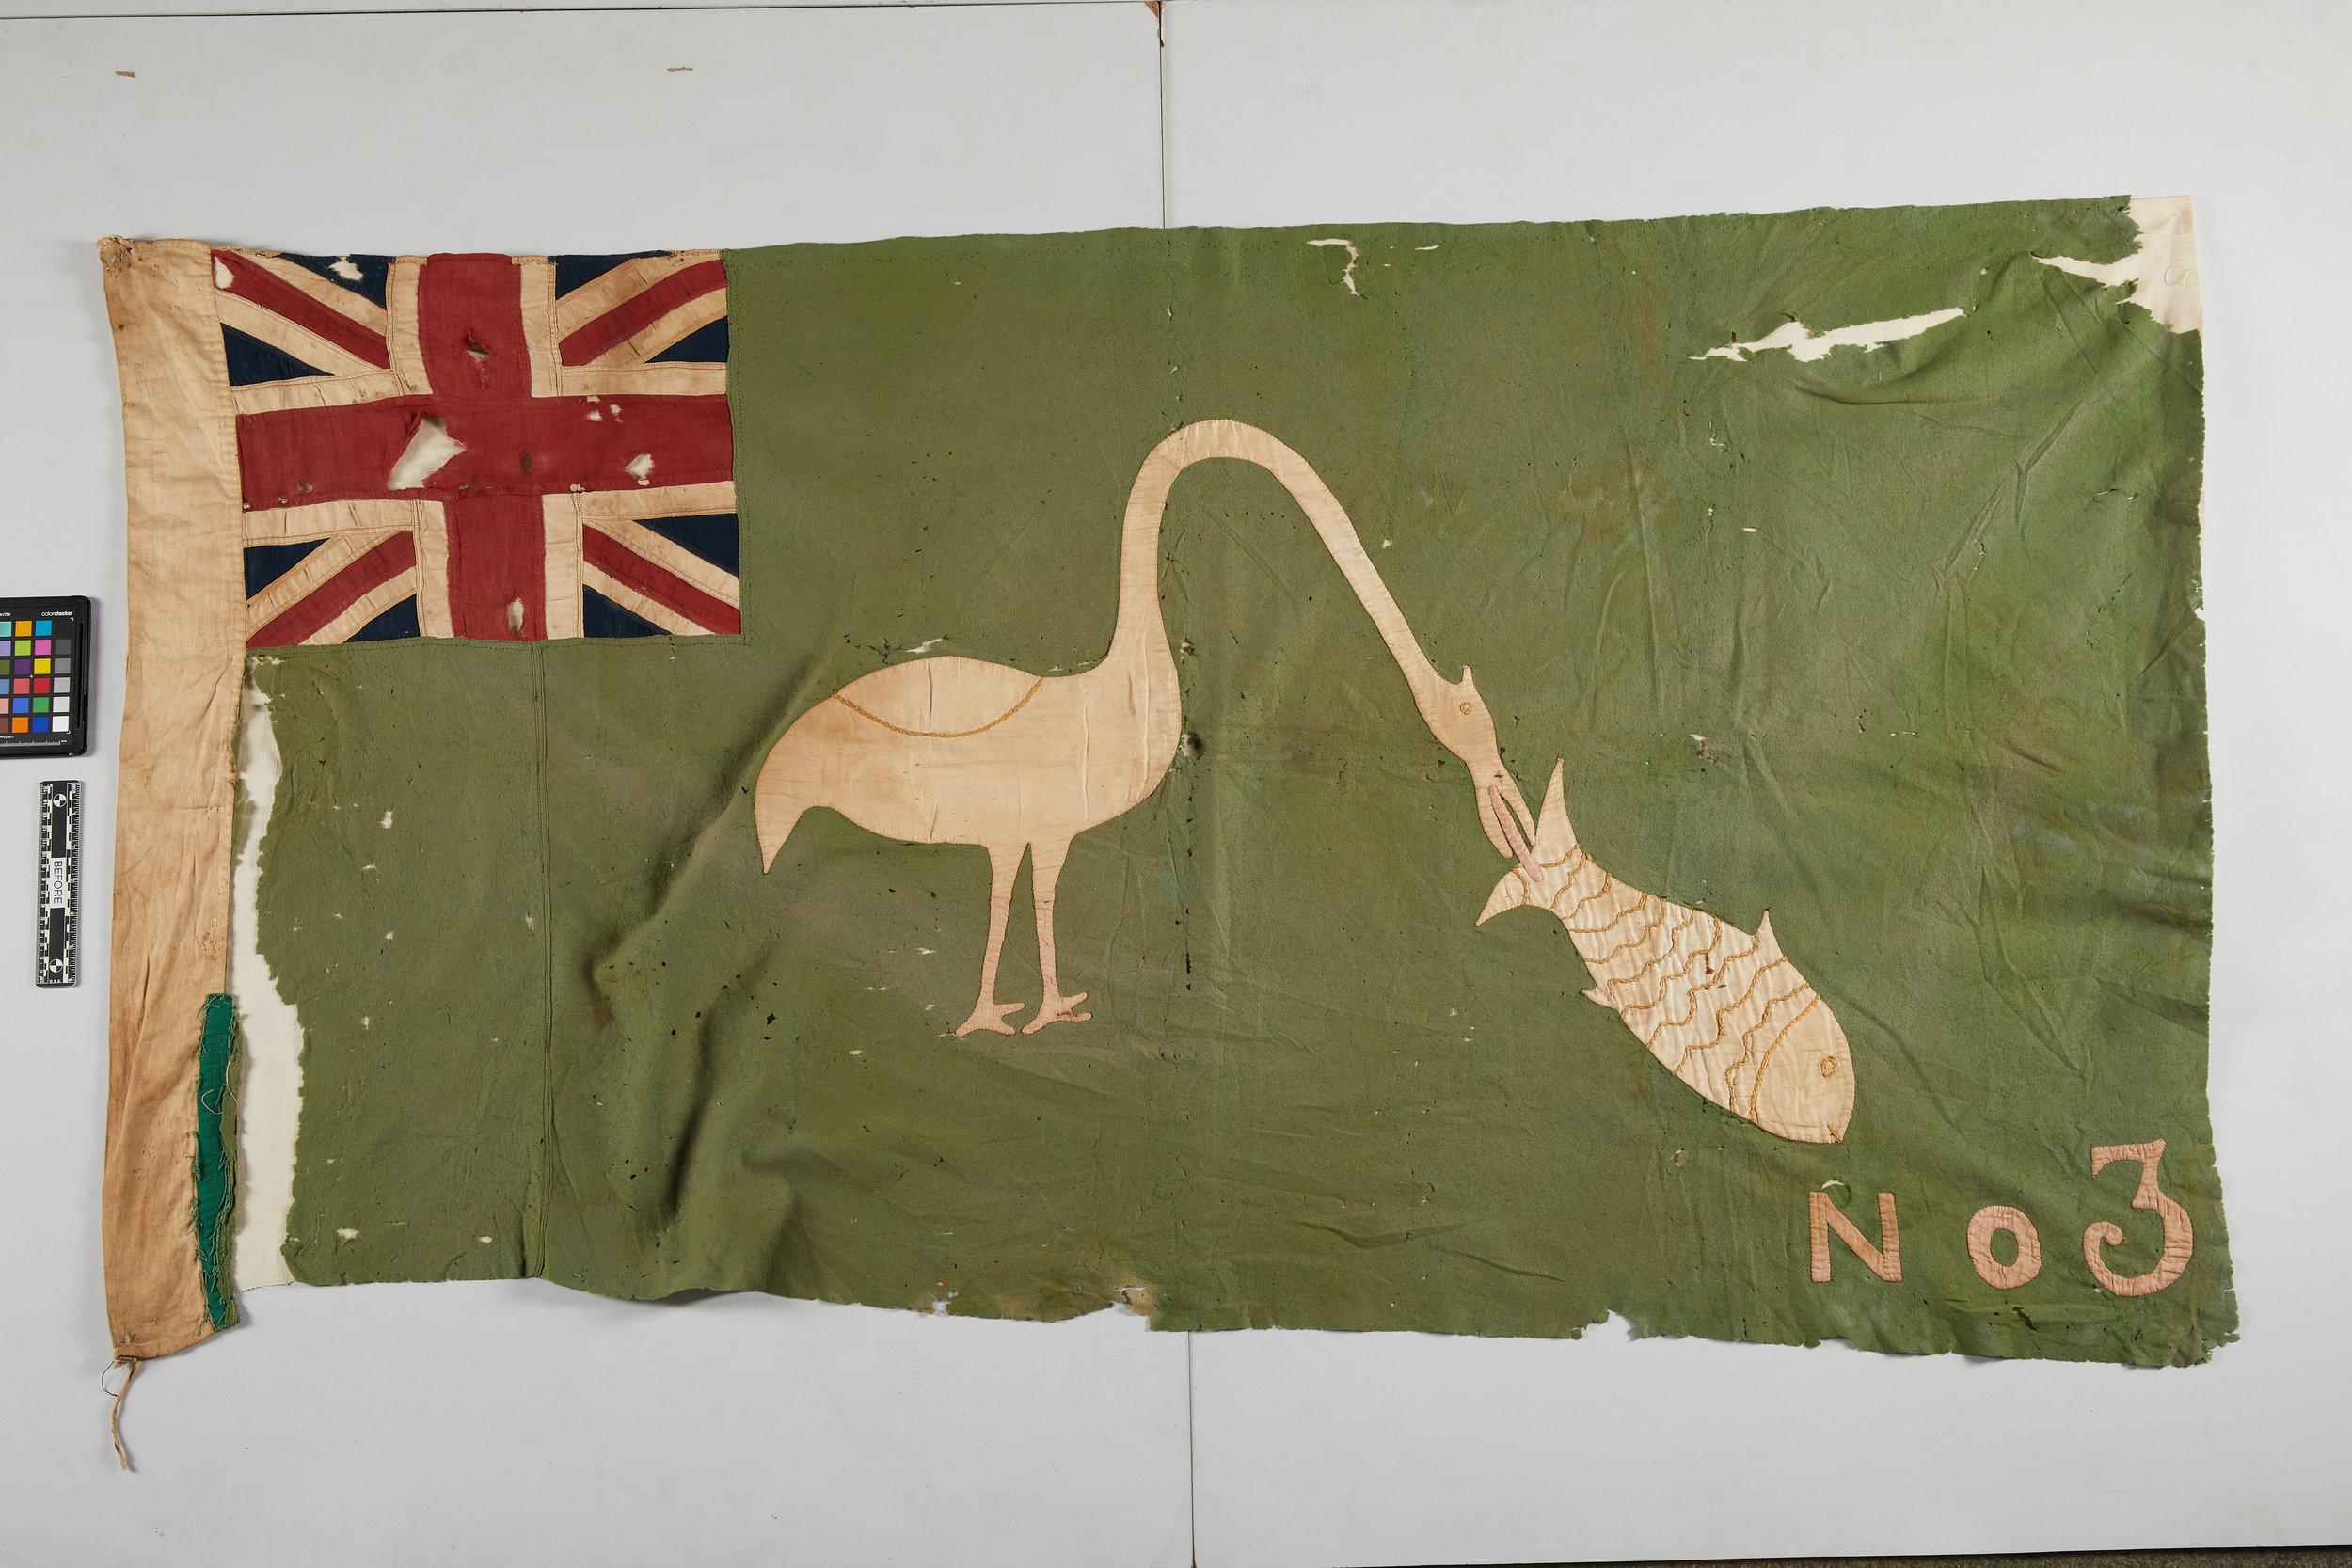 An Asafo flag from the collection with large areas of loss, 36 x 65 inches.